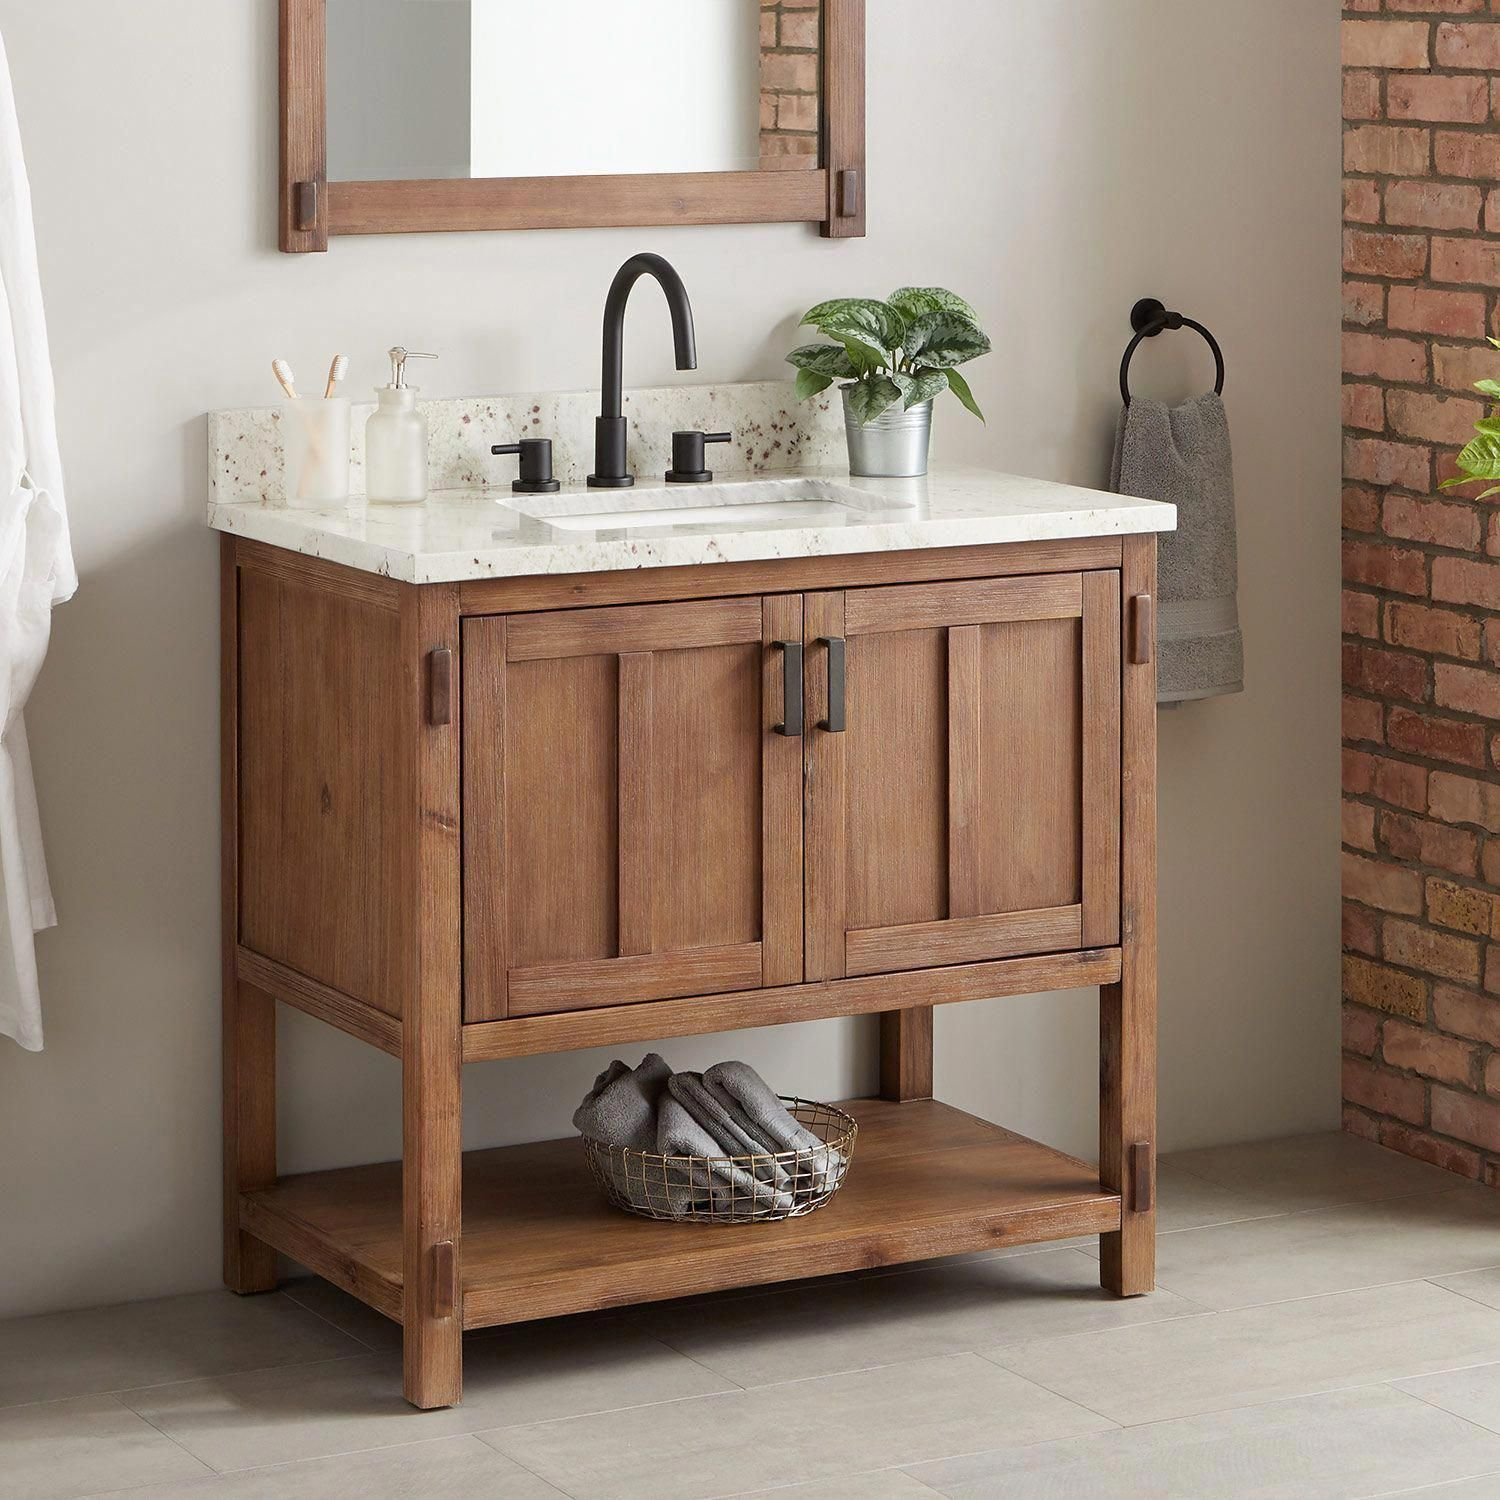 Ideal Acceptable console vanities bathroom Impressive Various